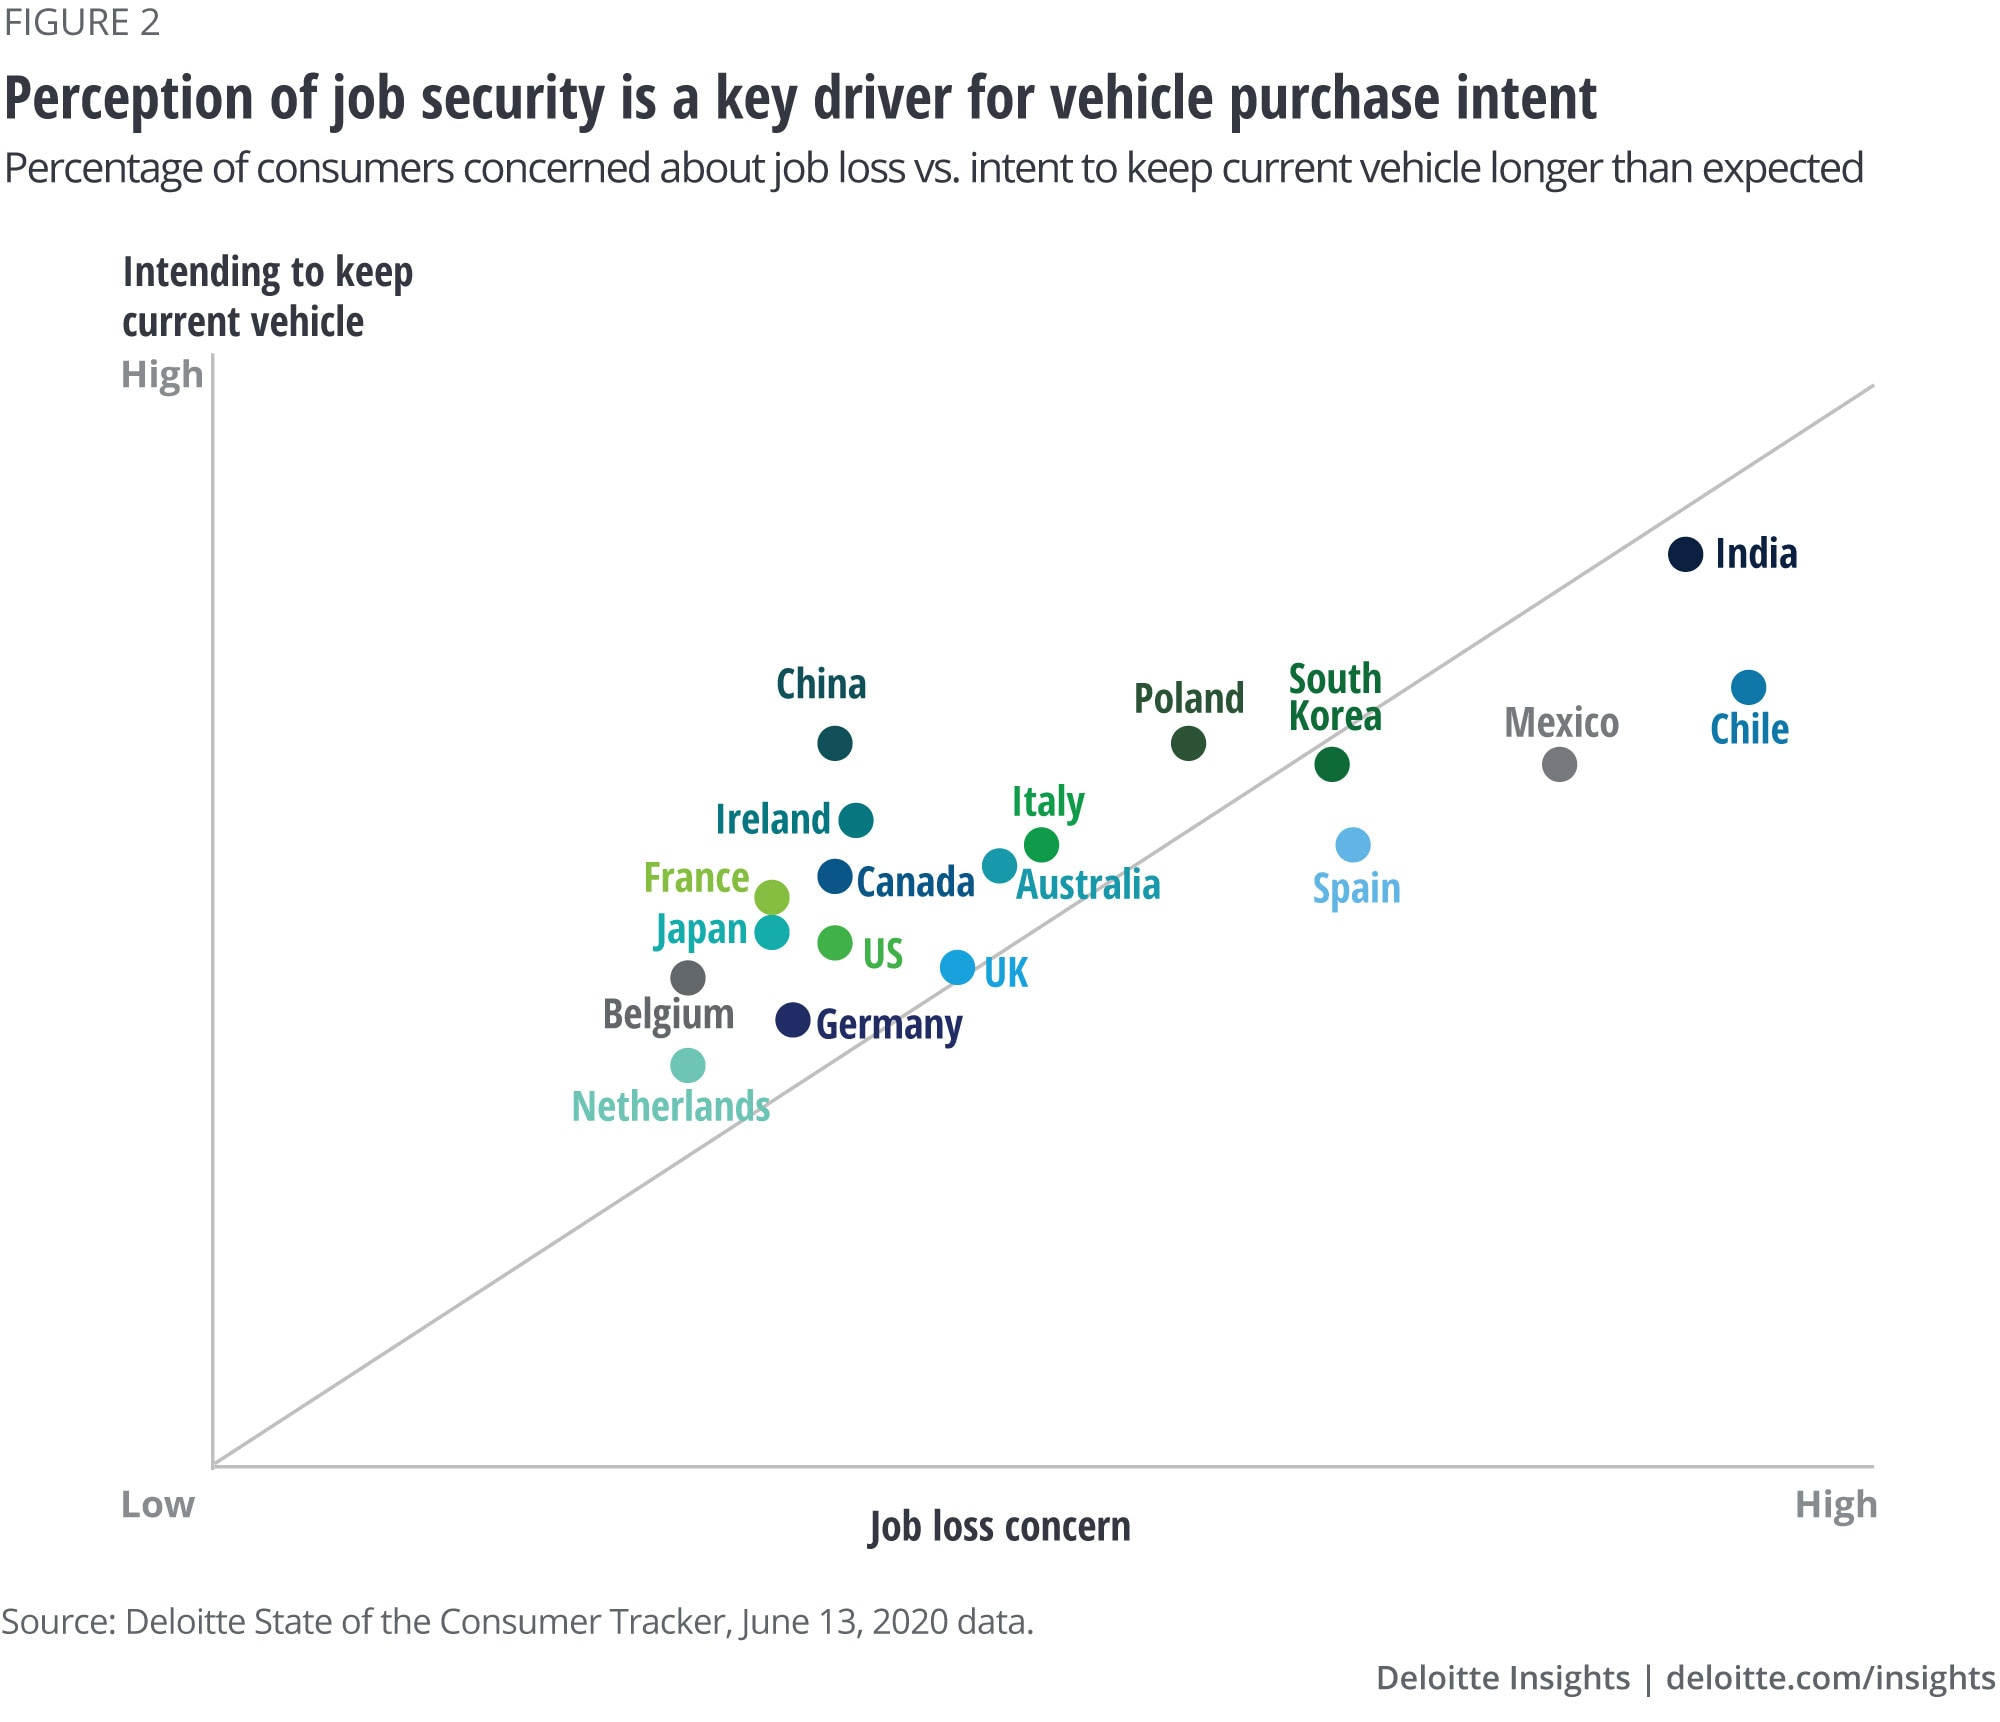 Perception of job security is a key driver for vehicle purchase intent